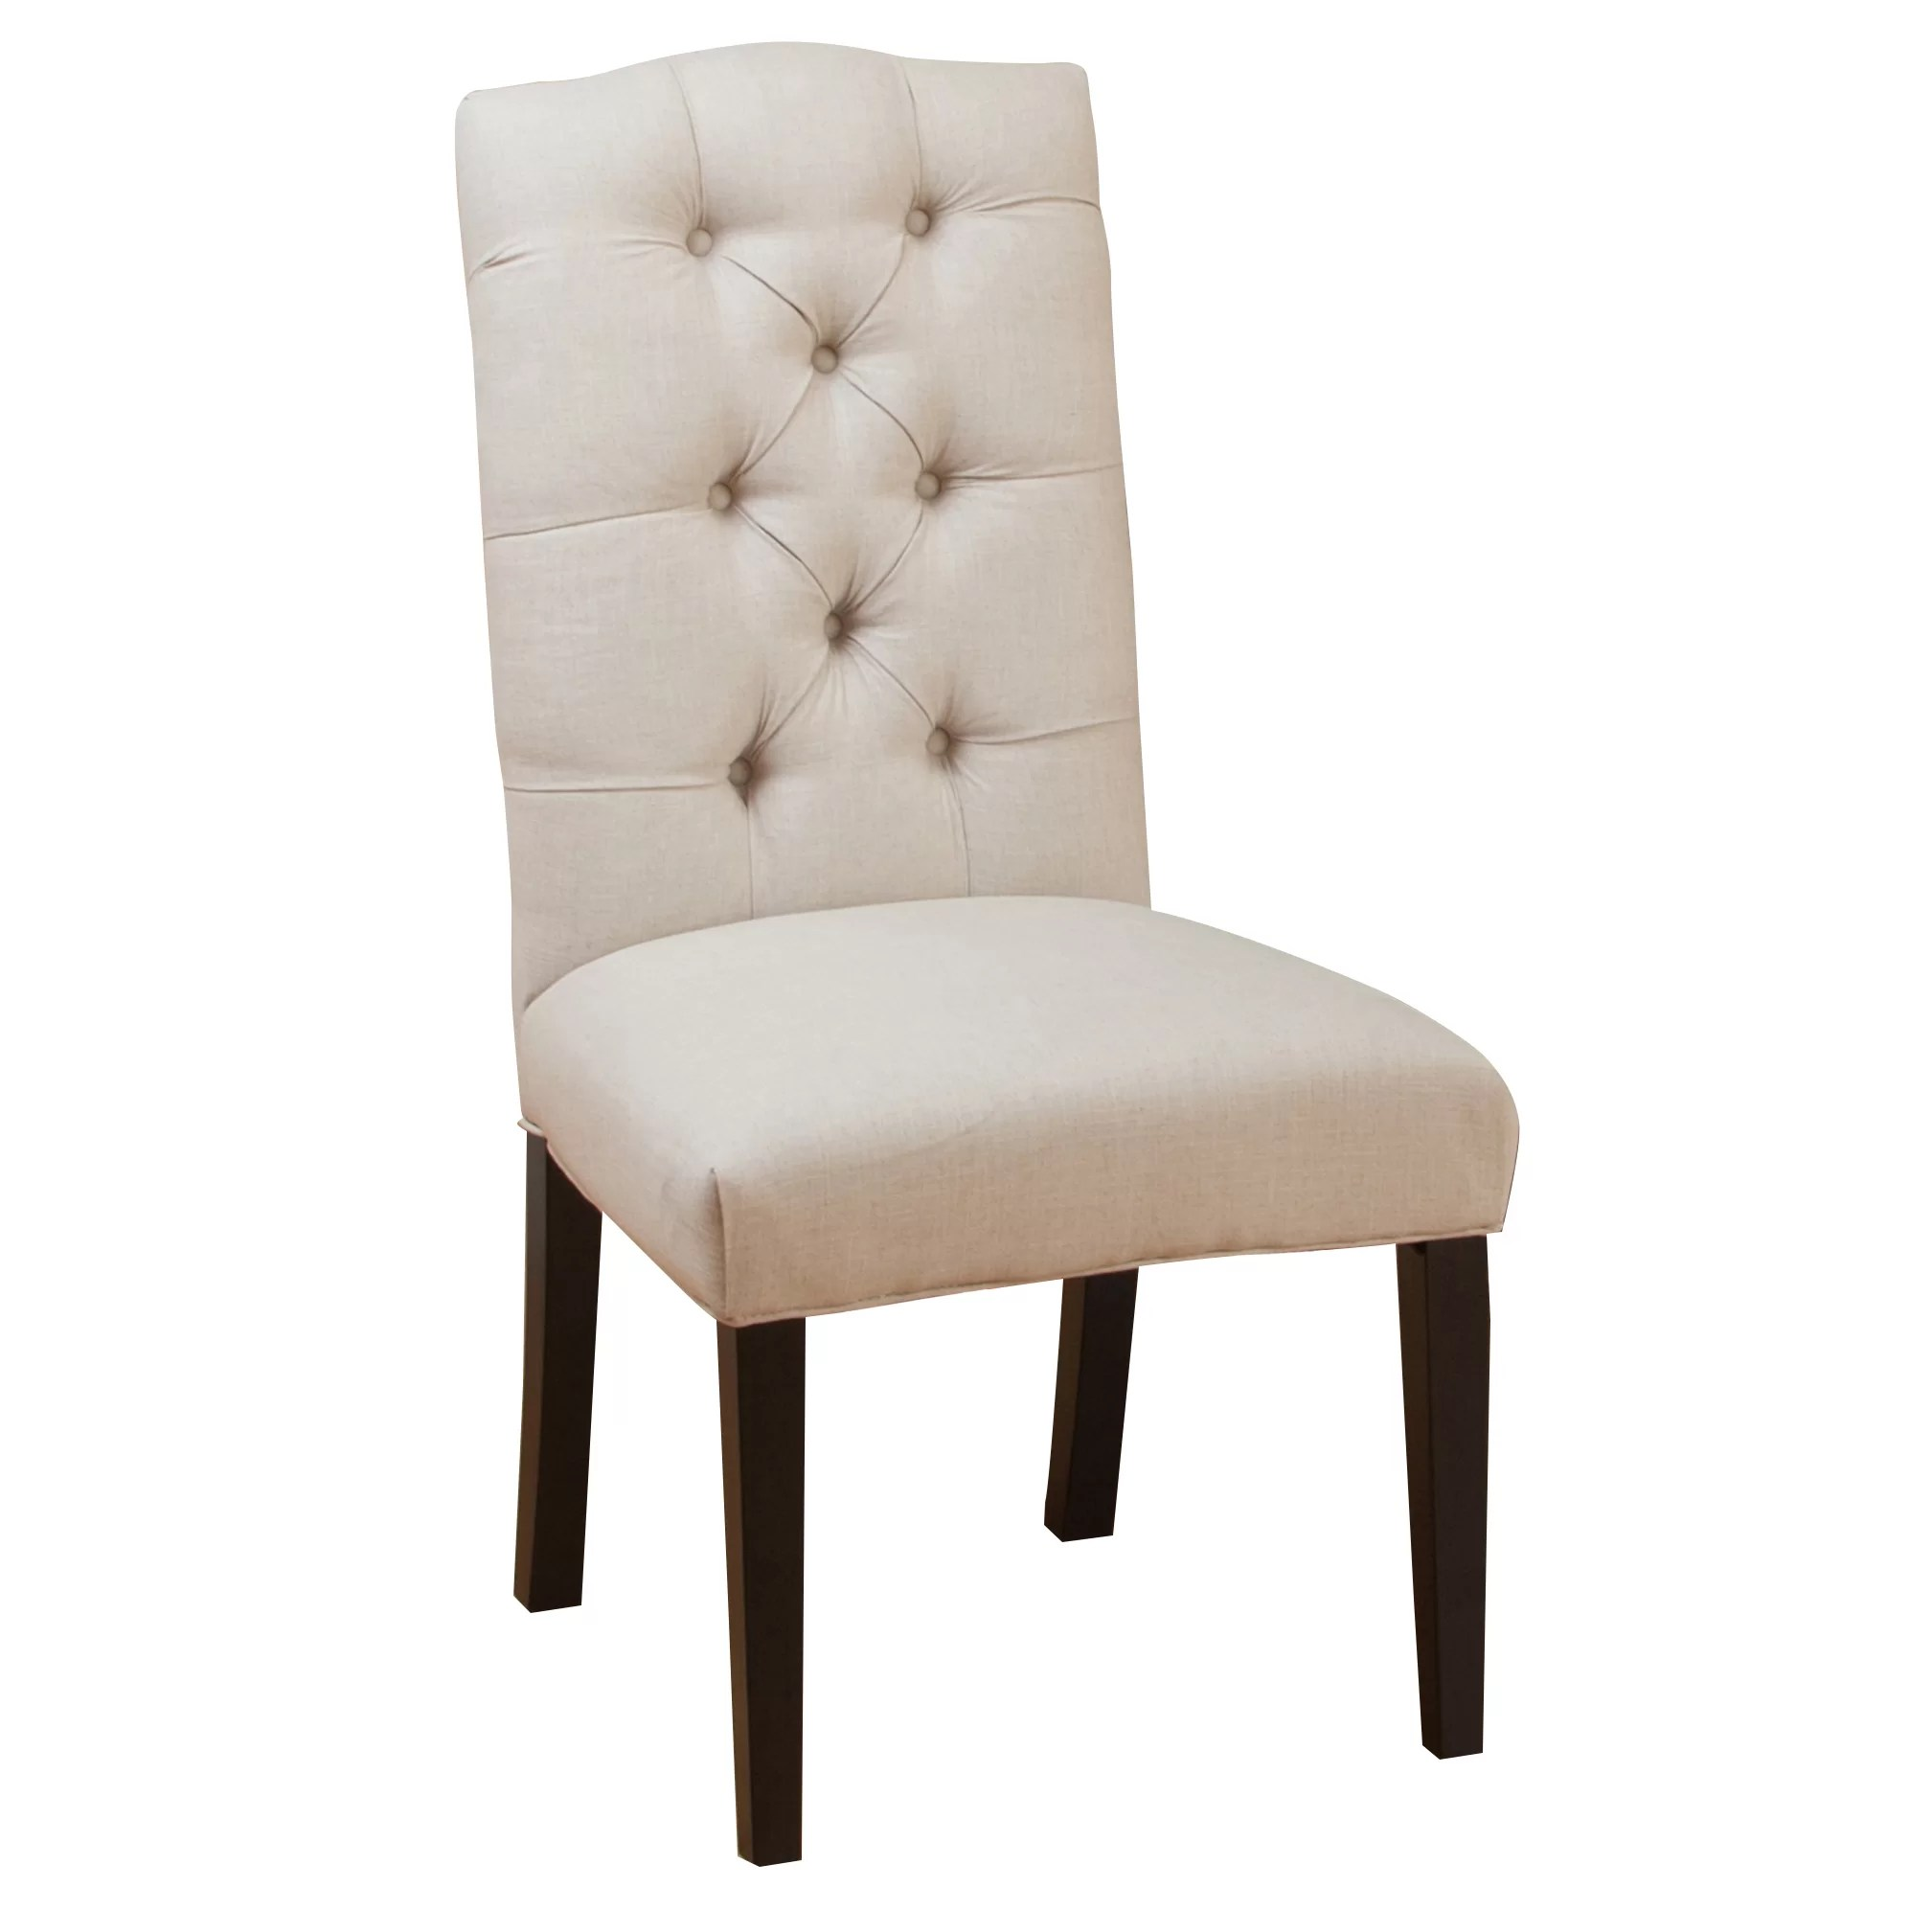 Linen Chair Three Posts Tufted Linen Side Chairs And Reviews Wayfair